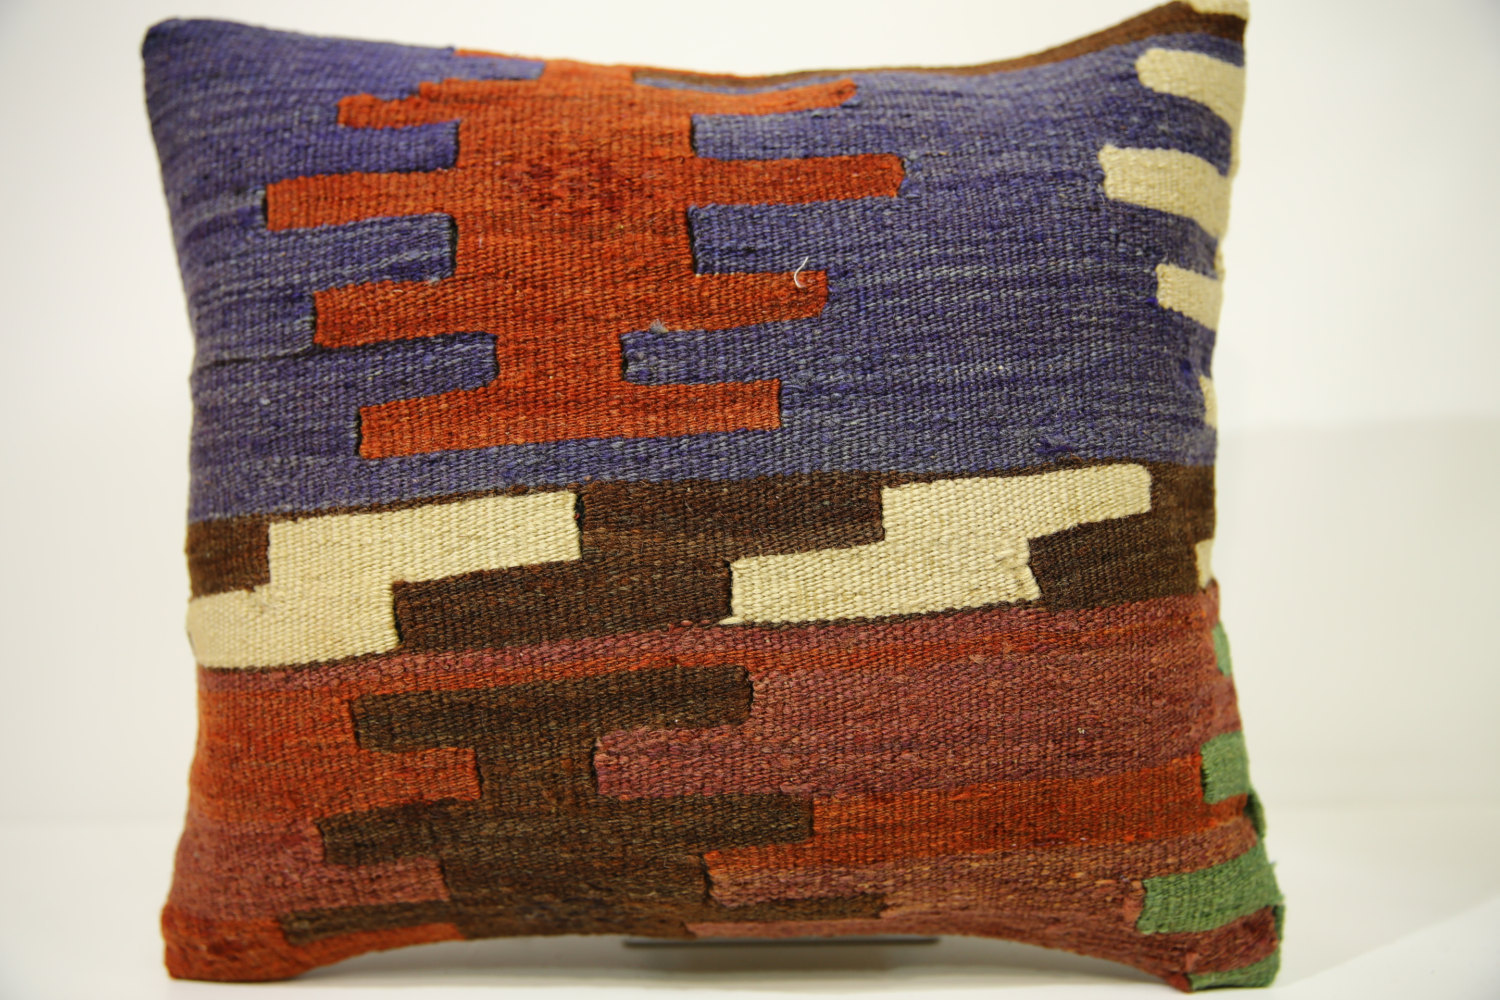 Kilim Pillows | 16x15 | Kelim pillows | 1207 | Turkish pillows , Kilim cushion